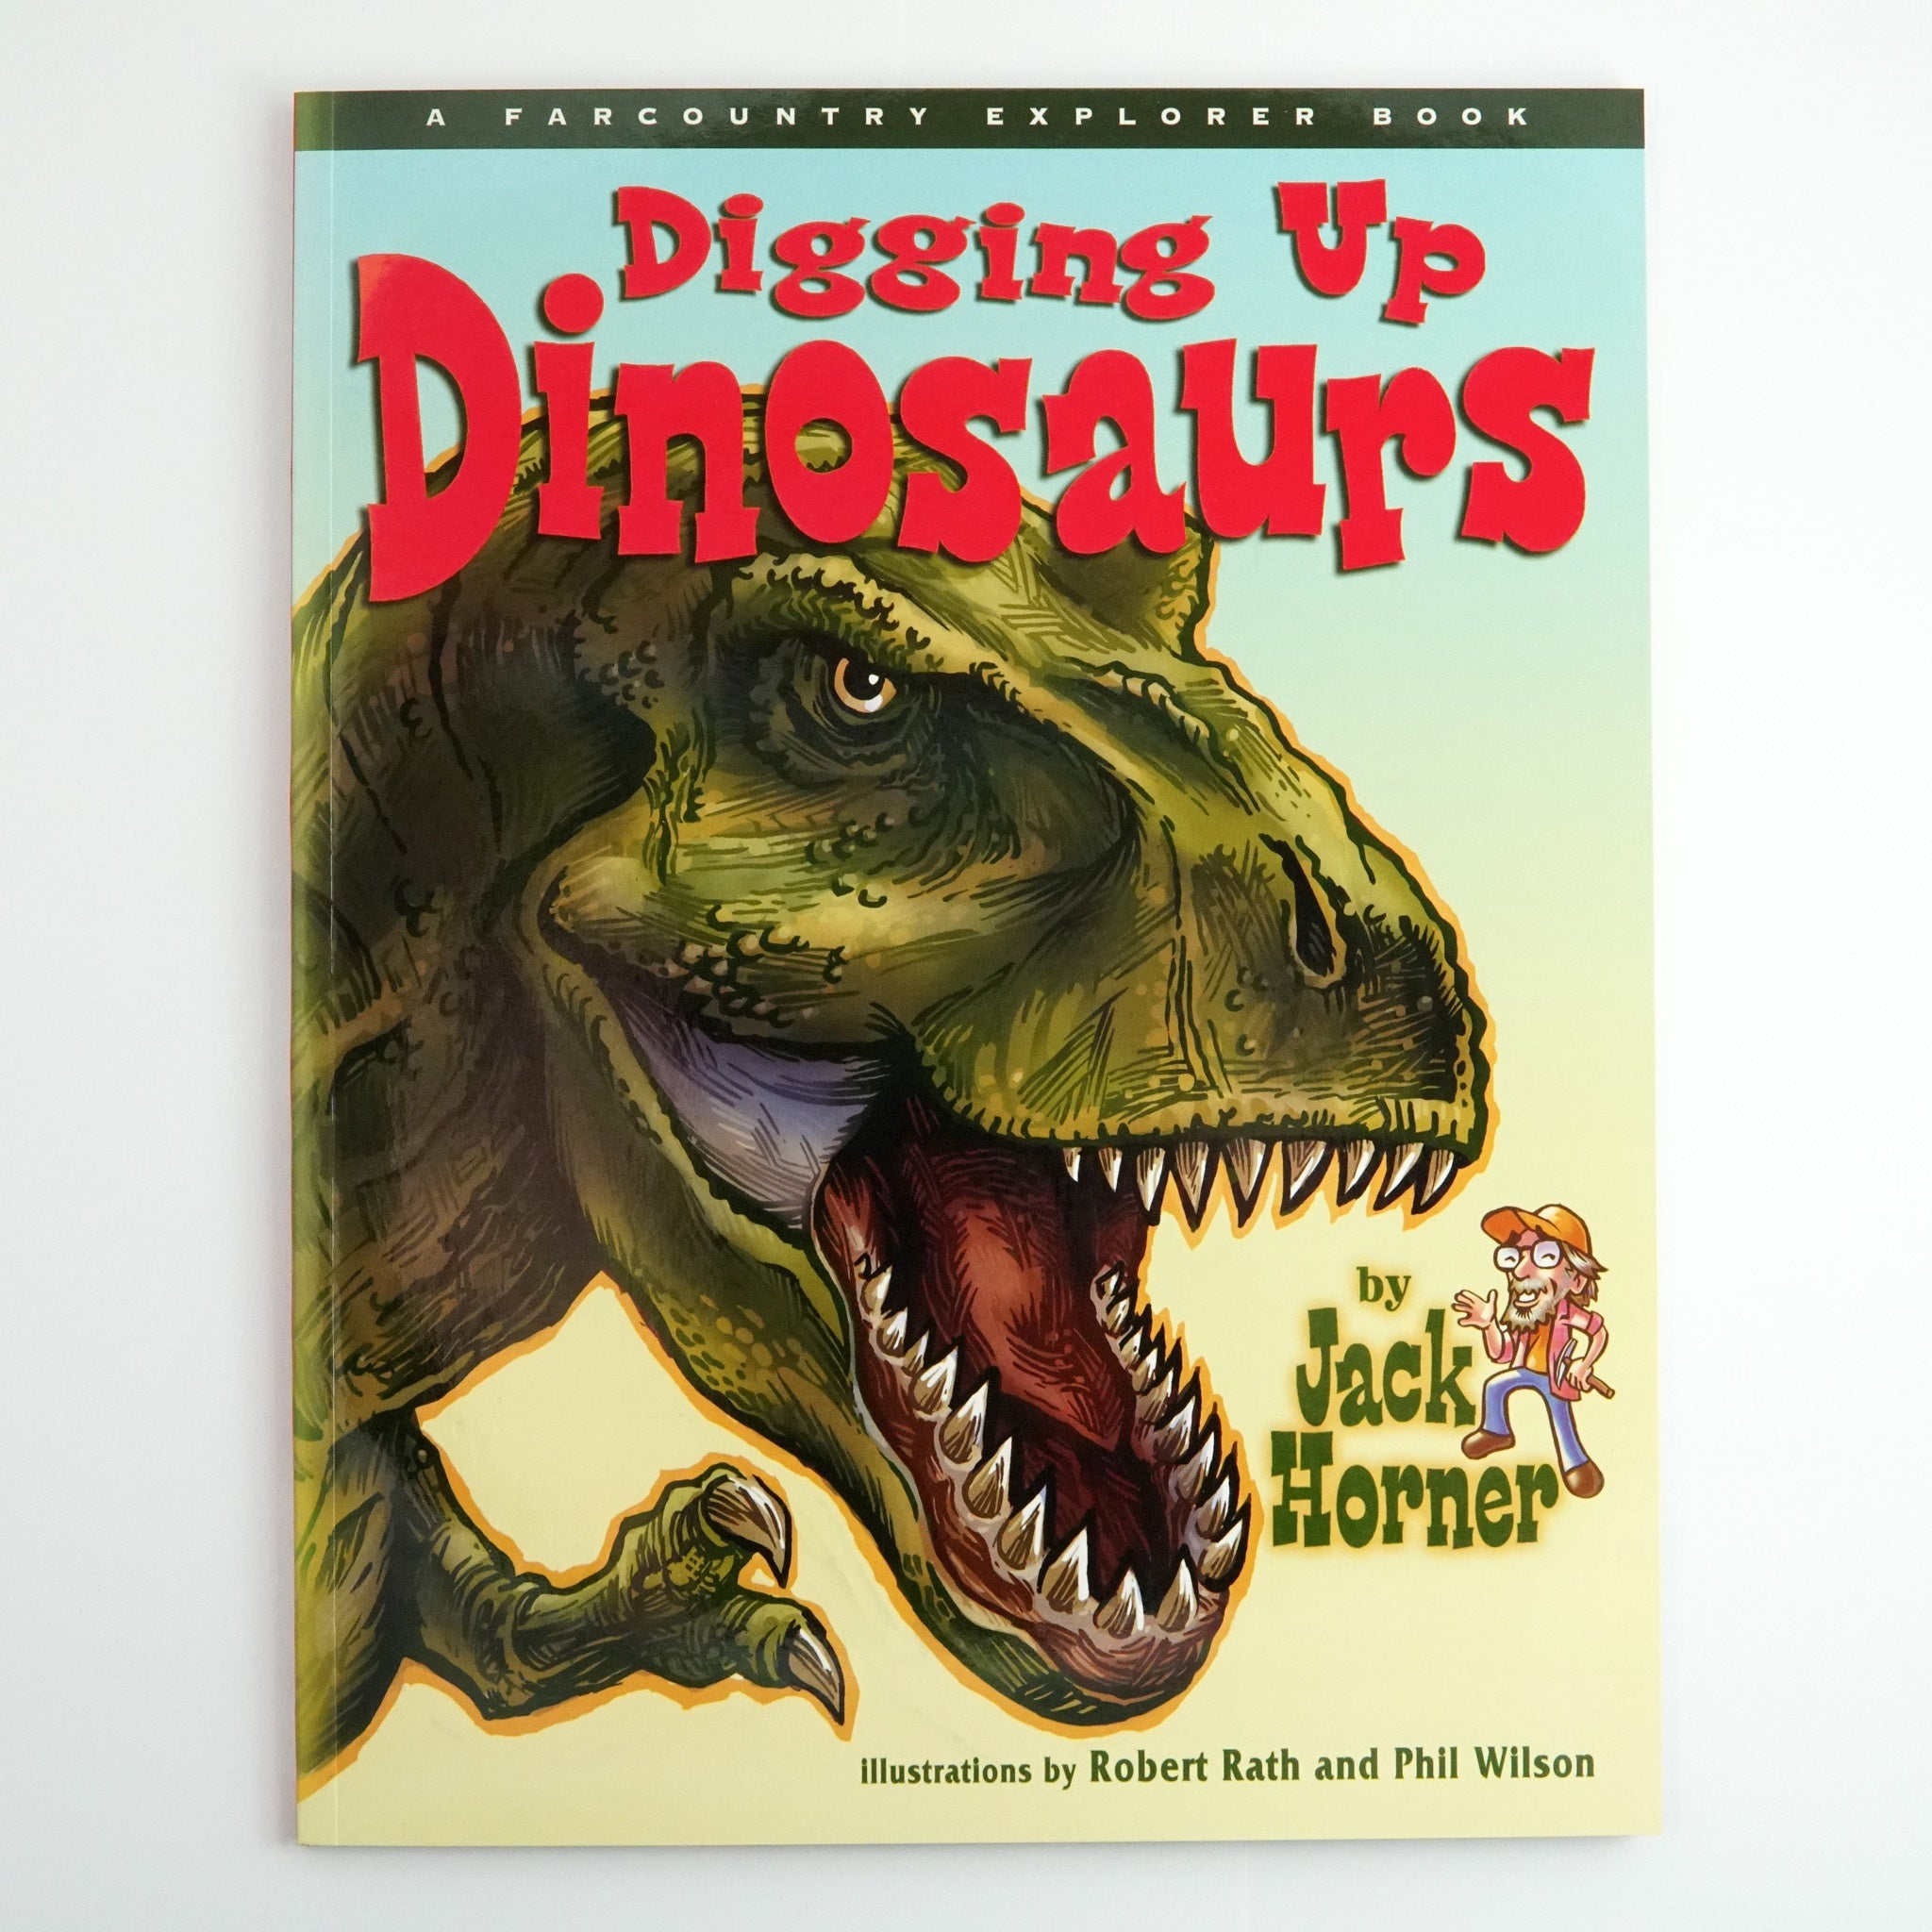 BK 19 DIGGING UP DINOSAURS BY JACK HORNER #21038233